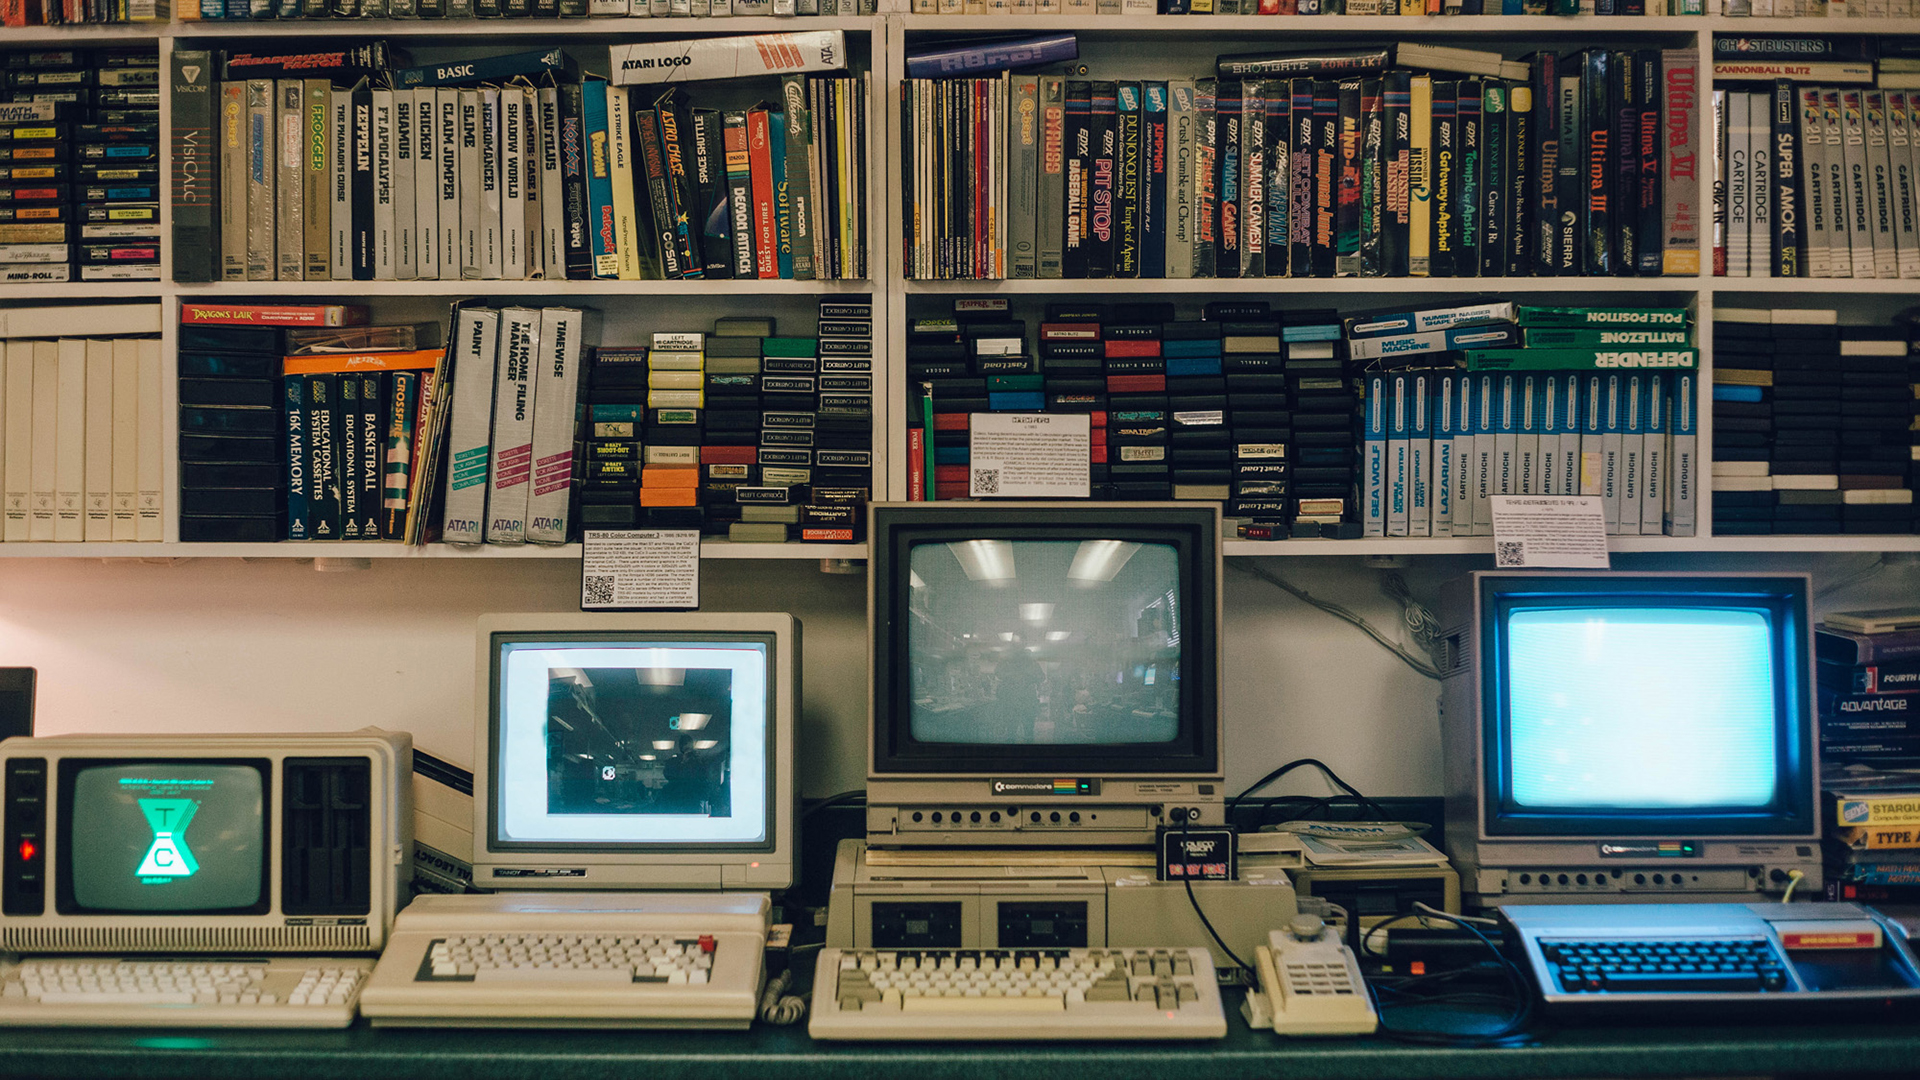 Vintage computers collection. Virtual background to use on Zoom, Microsoft Teams, Skype, Google Meet, WebEx or any other compatible app.